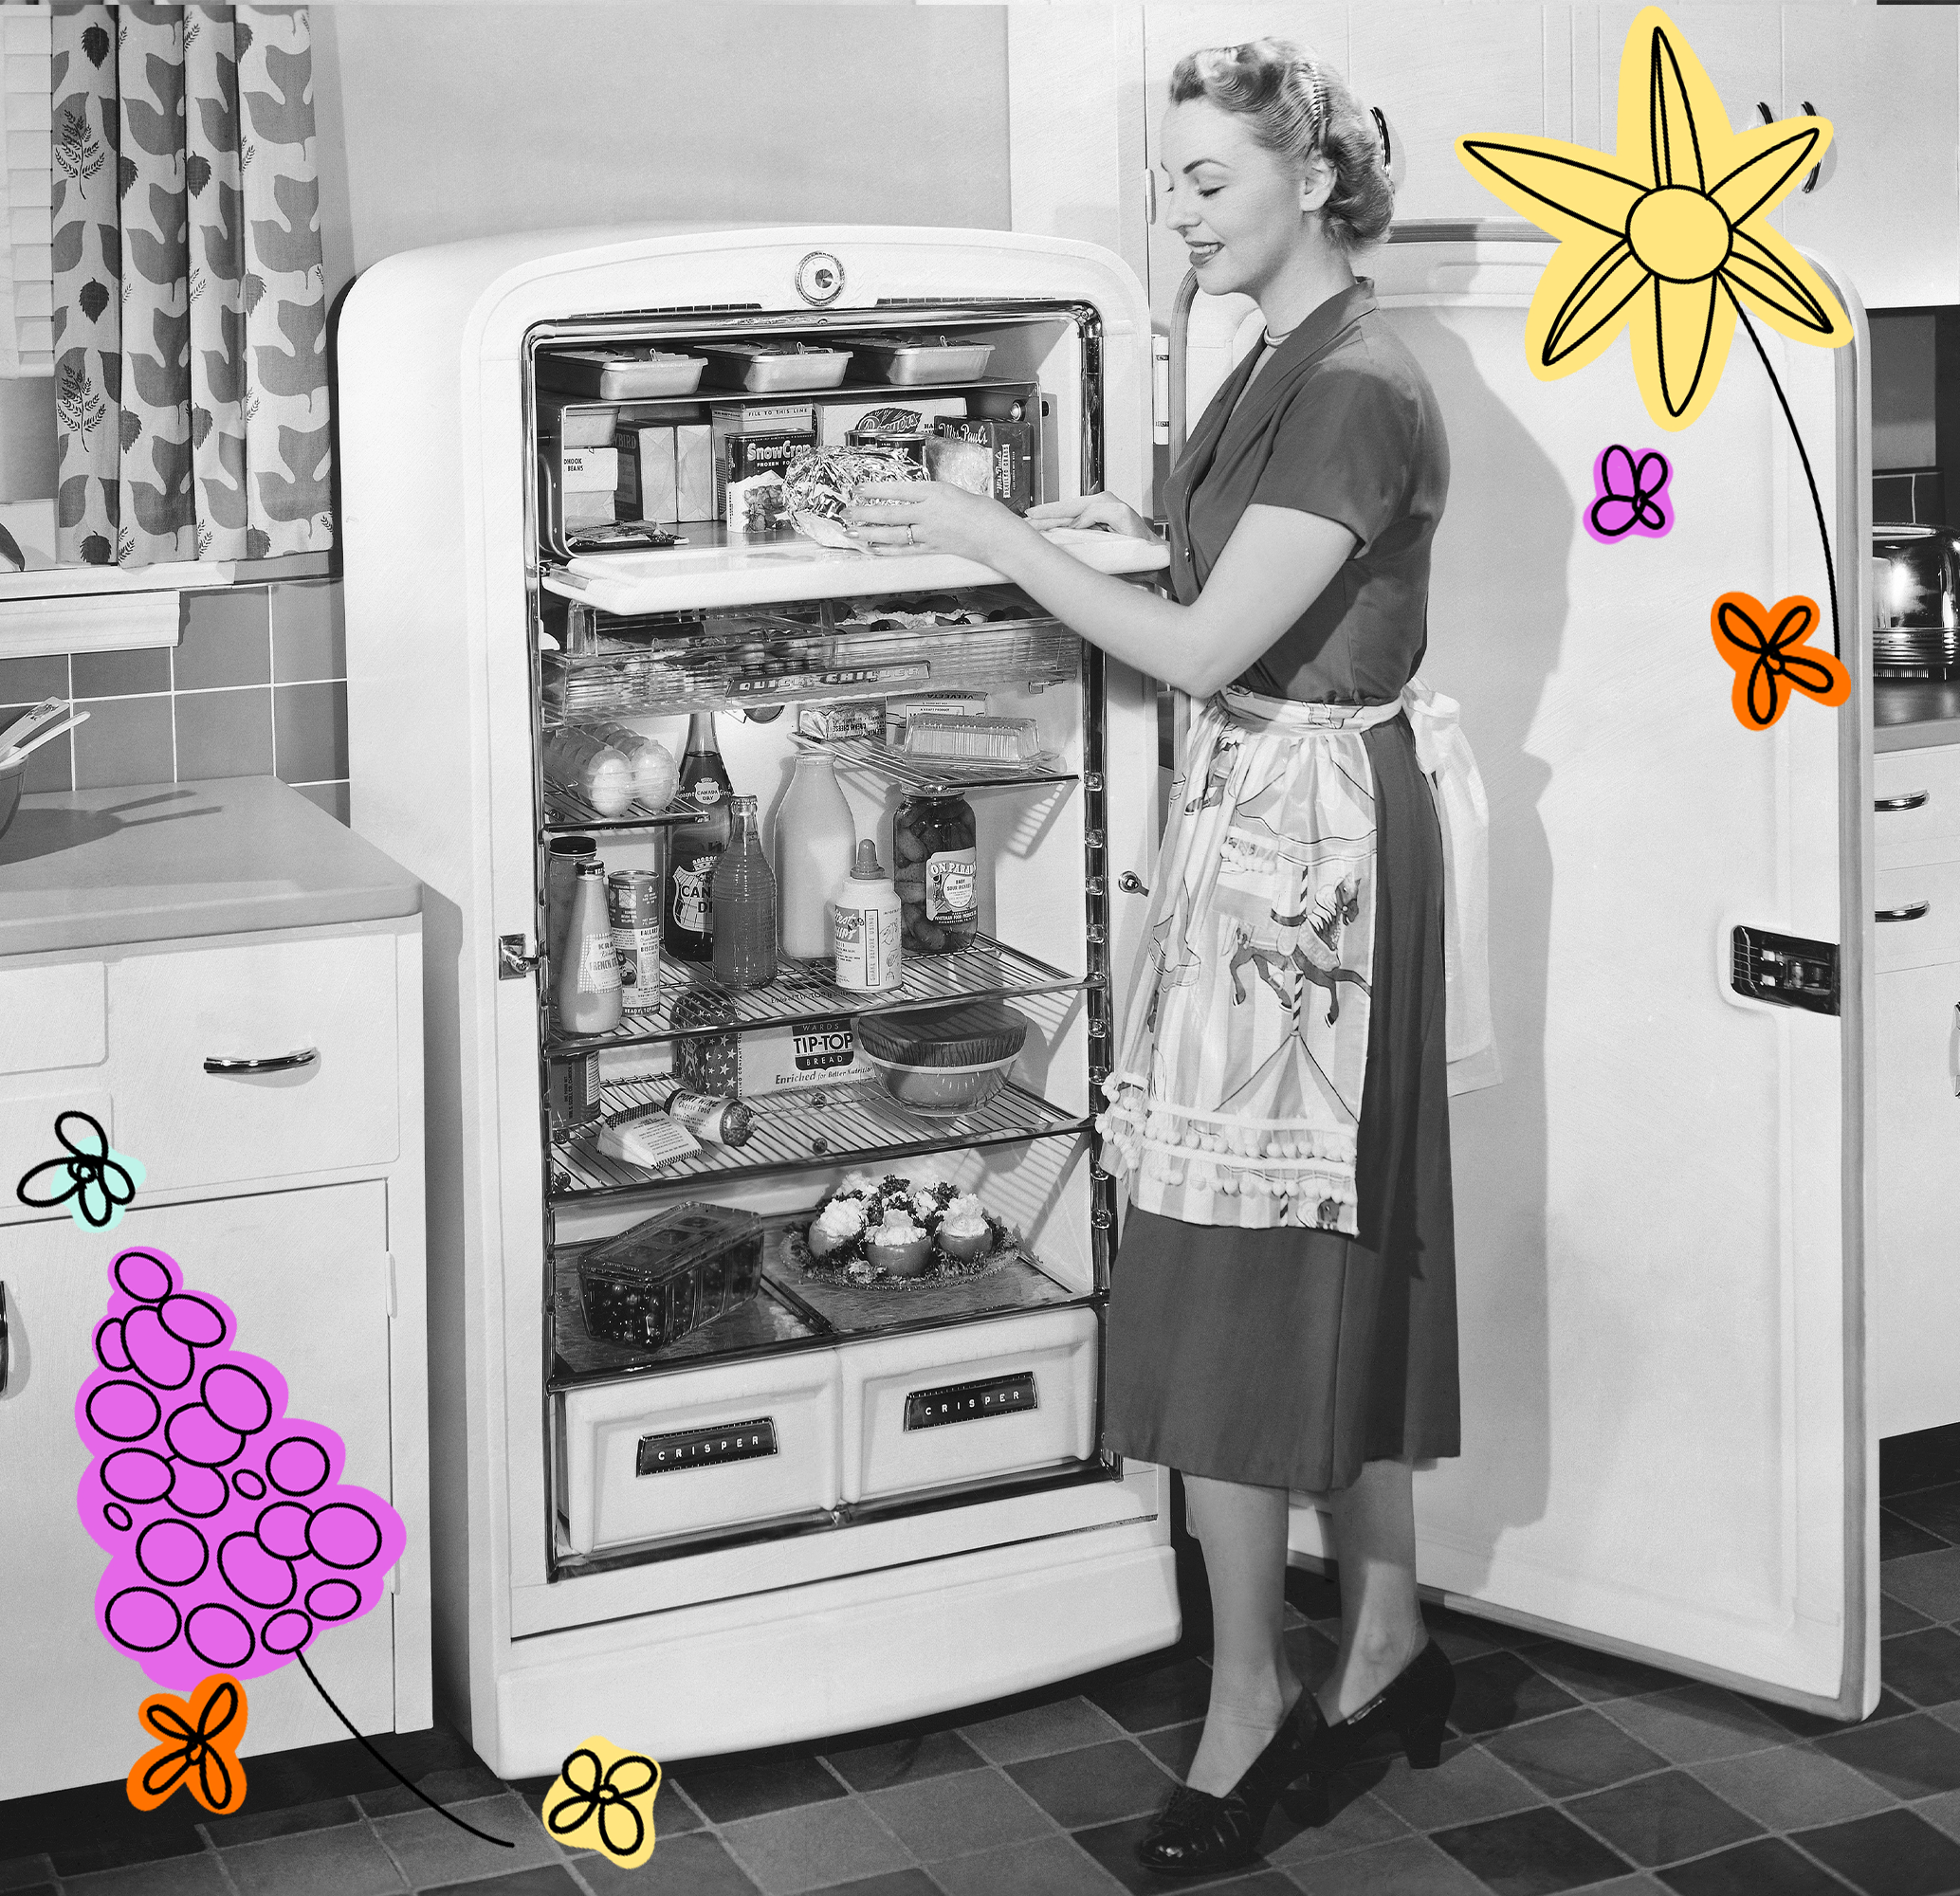 vintage photograph of a woman taking an ingredient out of the refrigerator